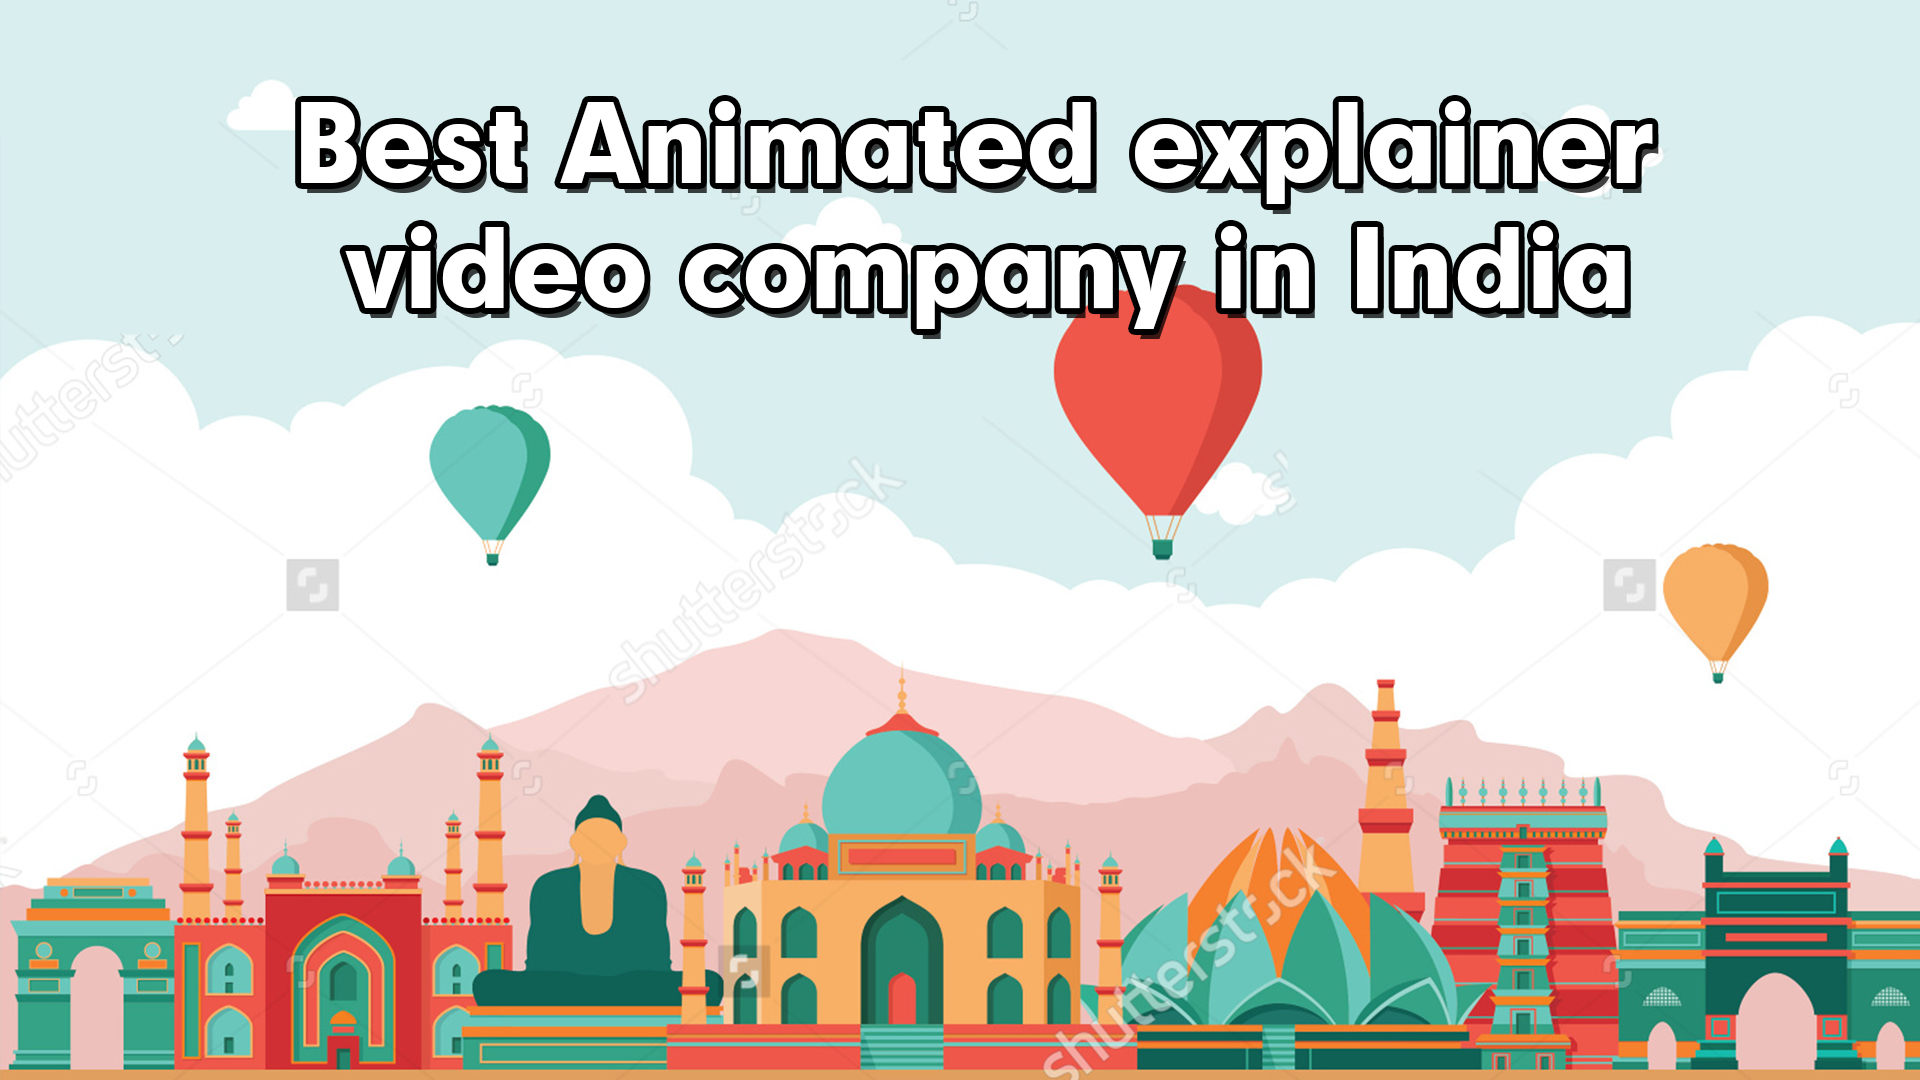 Best Animated explainer video company in India